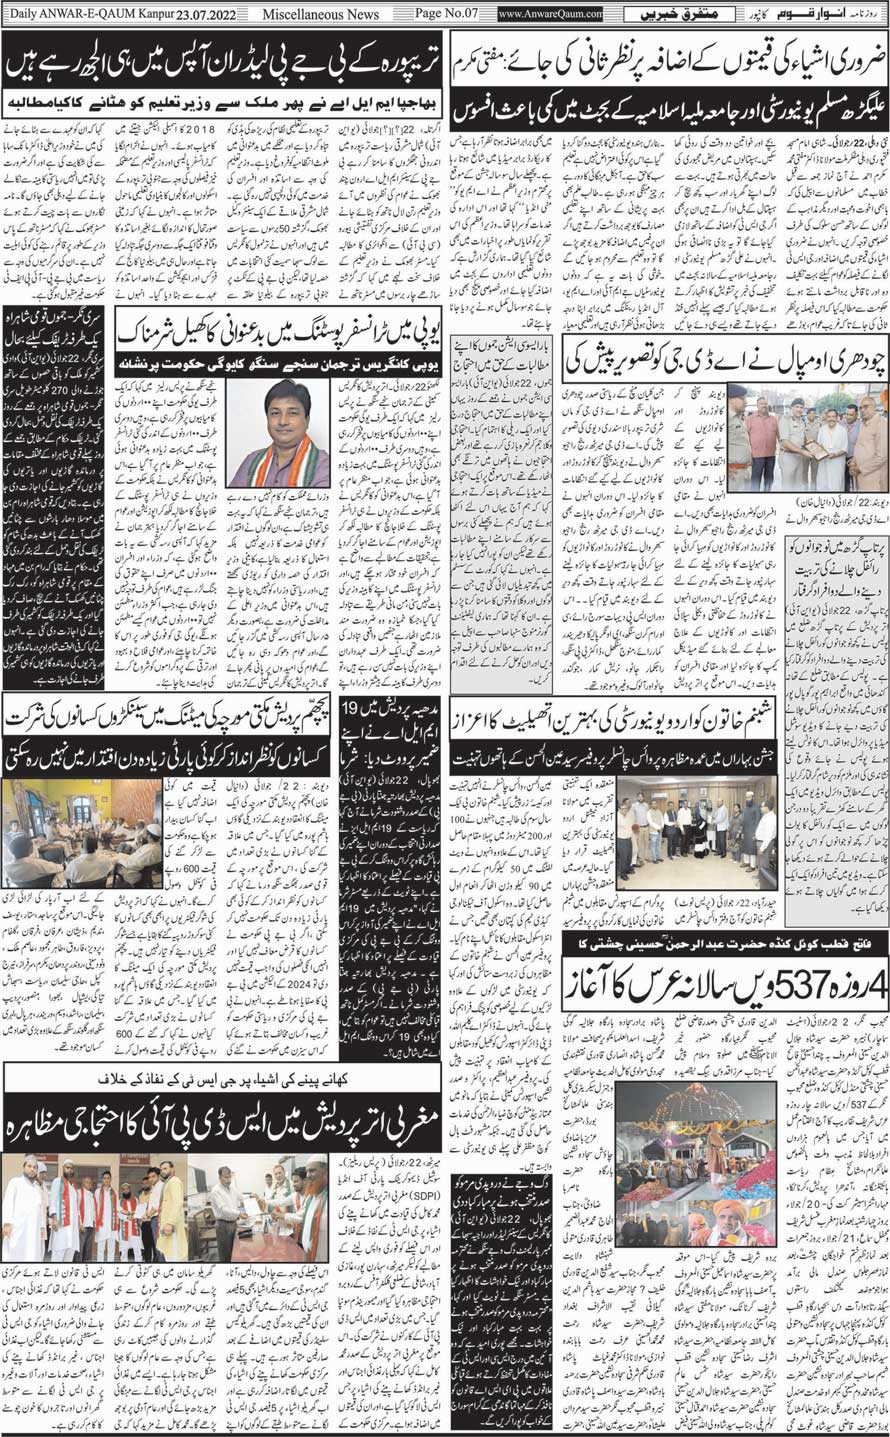 Anwar-E-Qaum, Urdu Daily, Published From Kanpur, Lucknow, Fatehpur, Uttar Pradesh, India